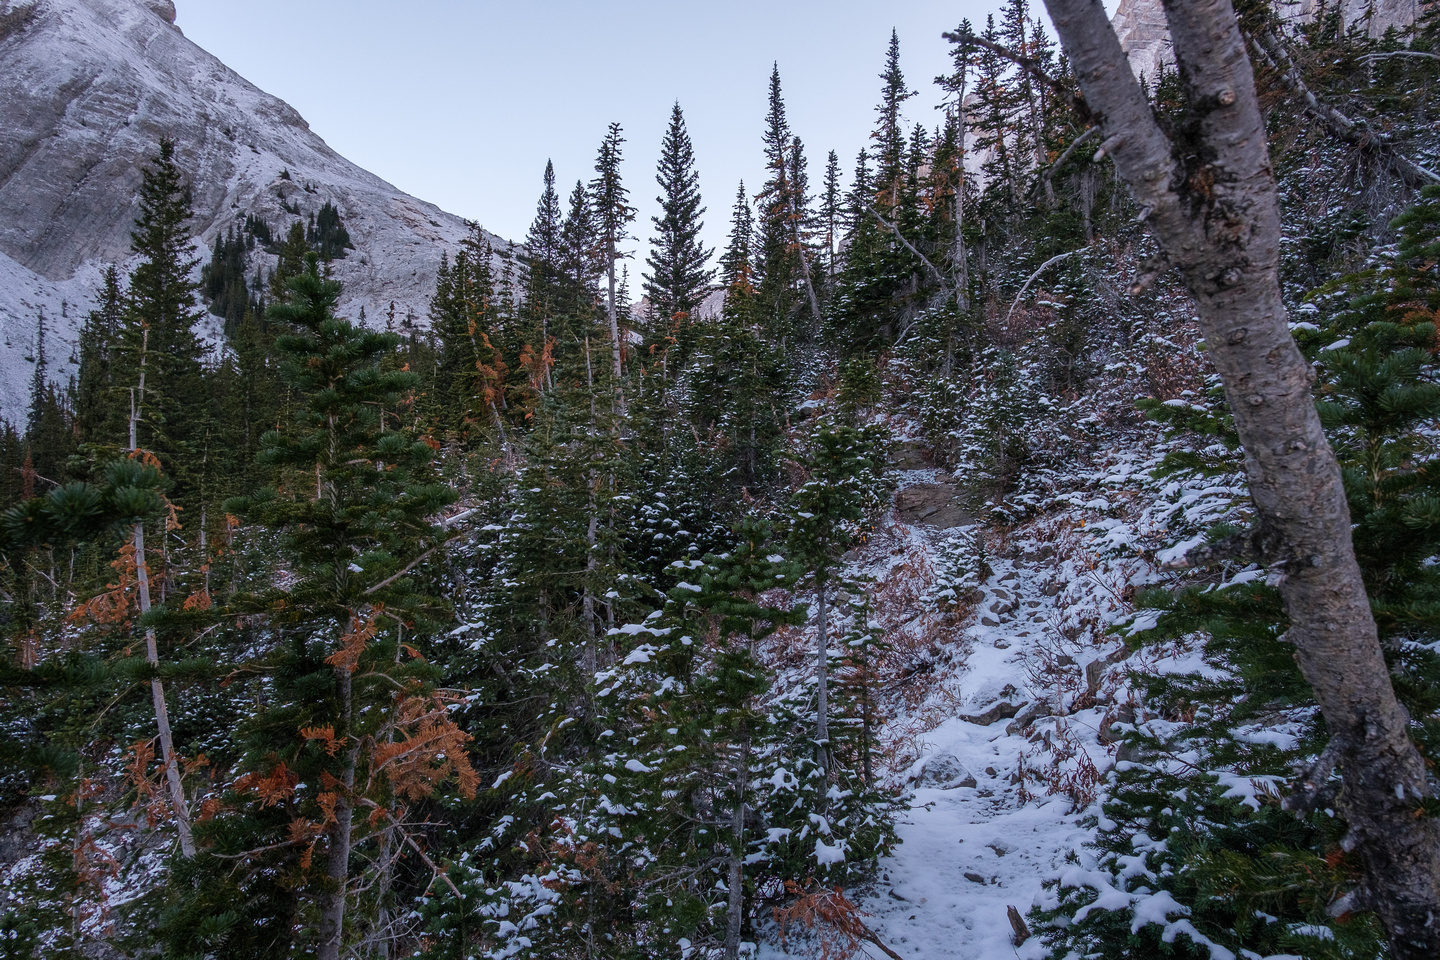 Hiking up through trees and a lower headwall.